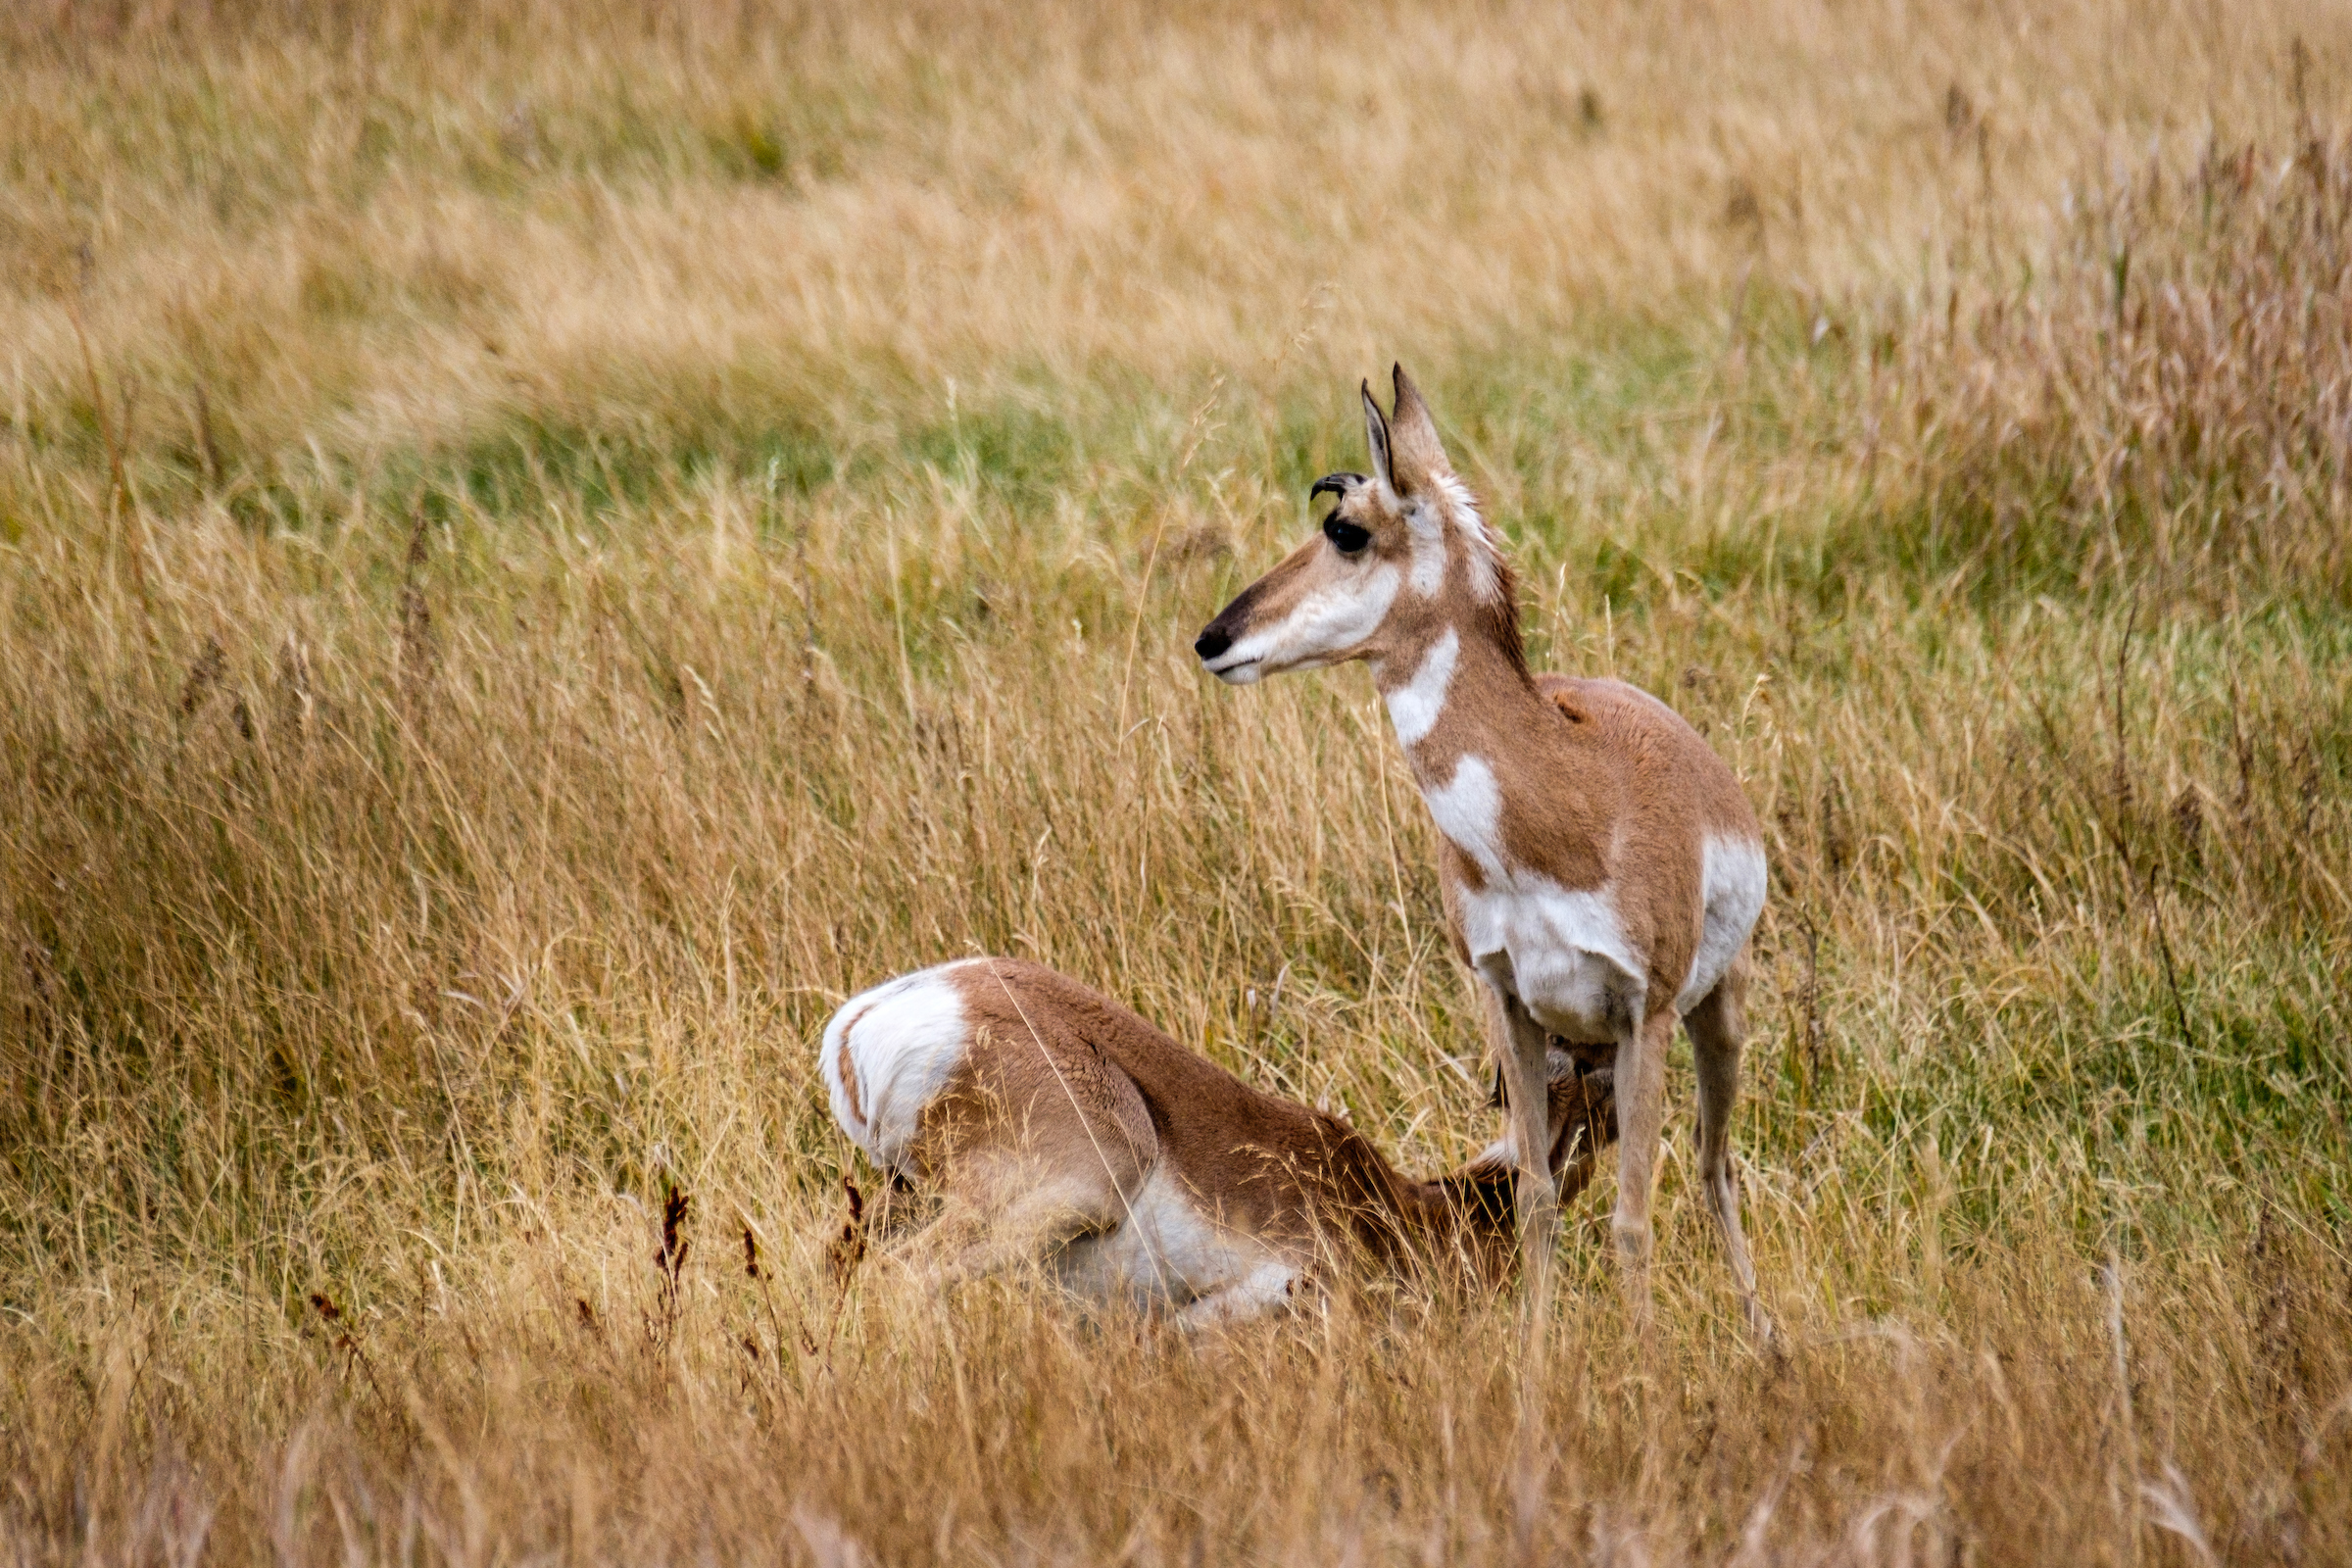 Pronghorn antelope feeding from his momma in Grand Teton in Wyoming.